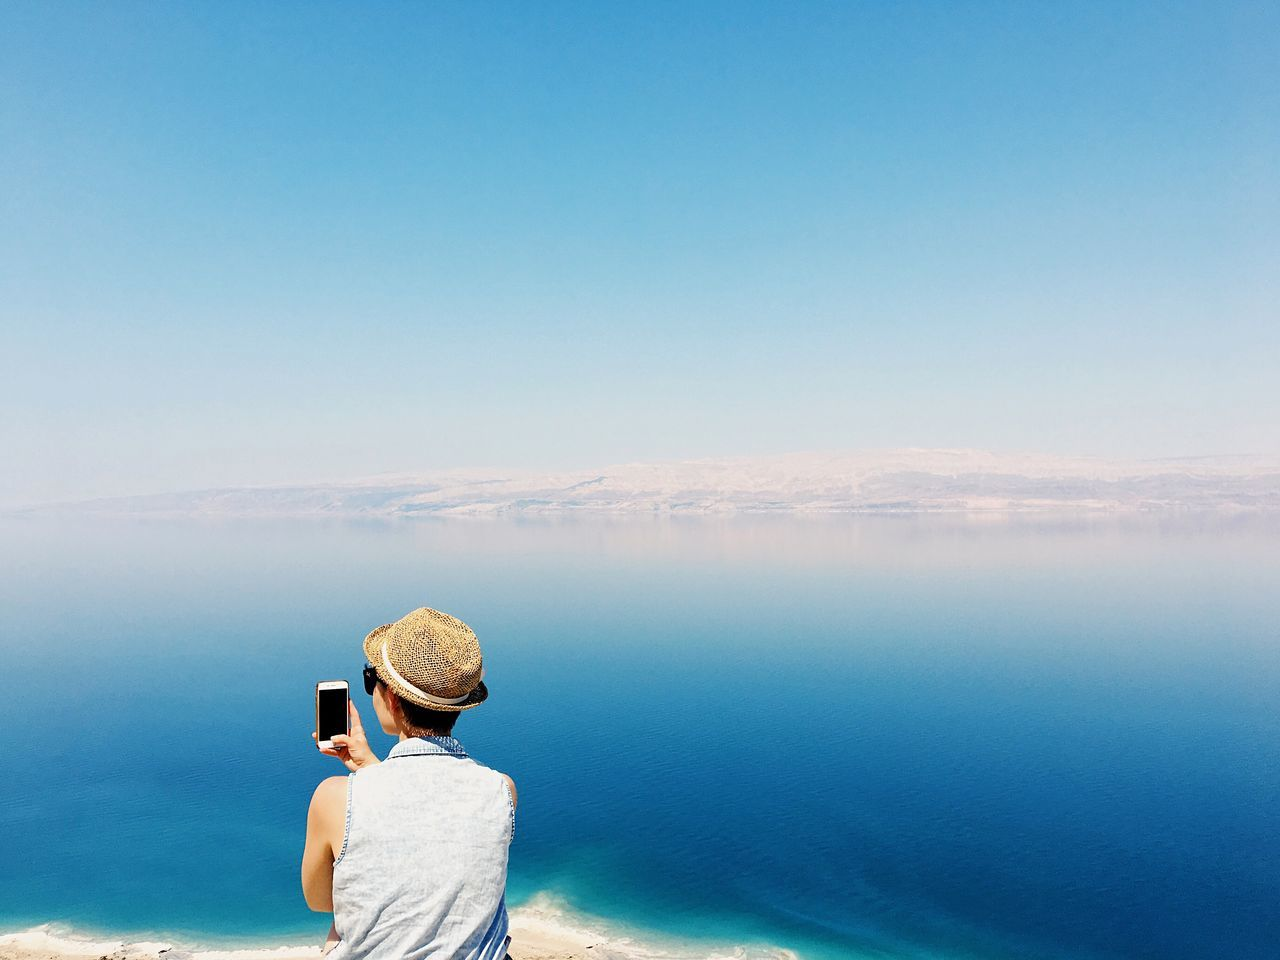 The view that amaze me every time Rear View Water Real People Wireless Technology Leisure Activity Lifestyles Sea Technology Nature Photographing One Person Scenics Beauty In Nature Mobile Phone Tranquil Scene Women Outdoors Standing Tranquility Day Dead Sea  Dead Sea View Dead Sea Jordan Dead Sea Israel Seating